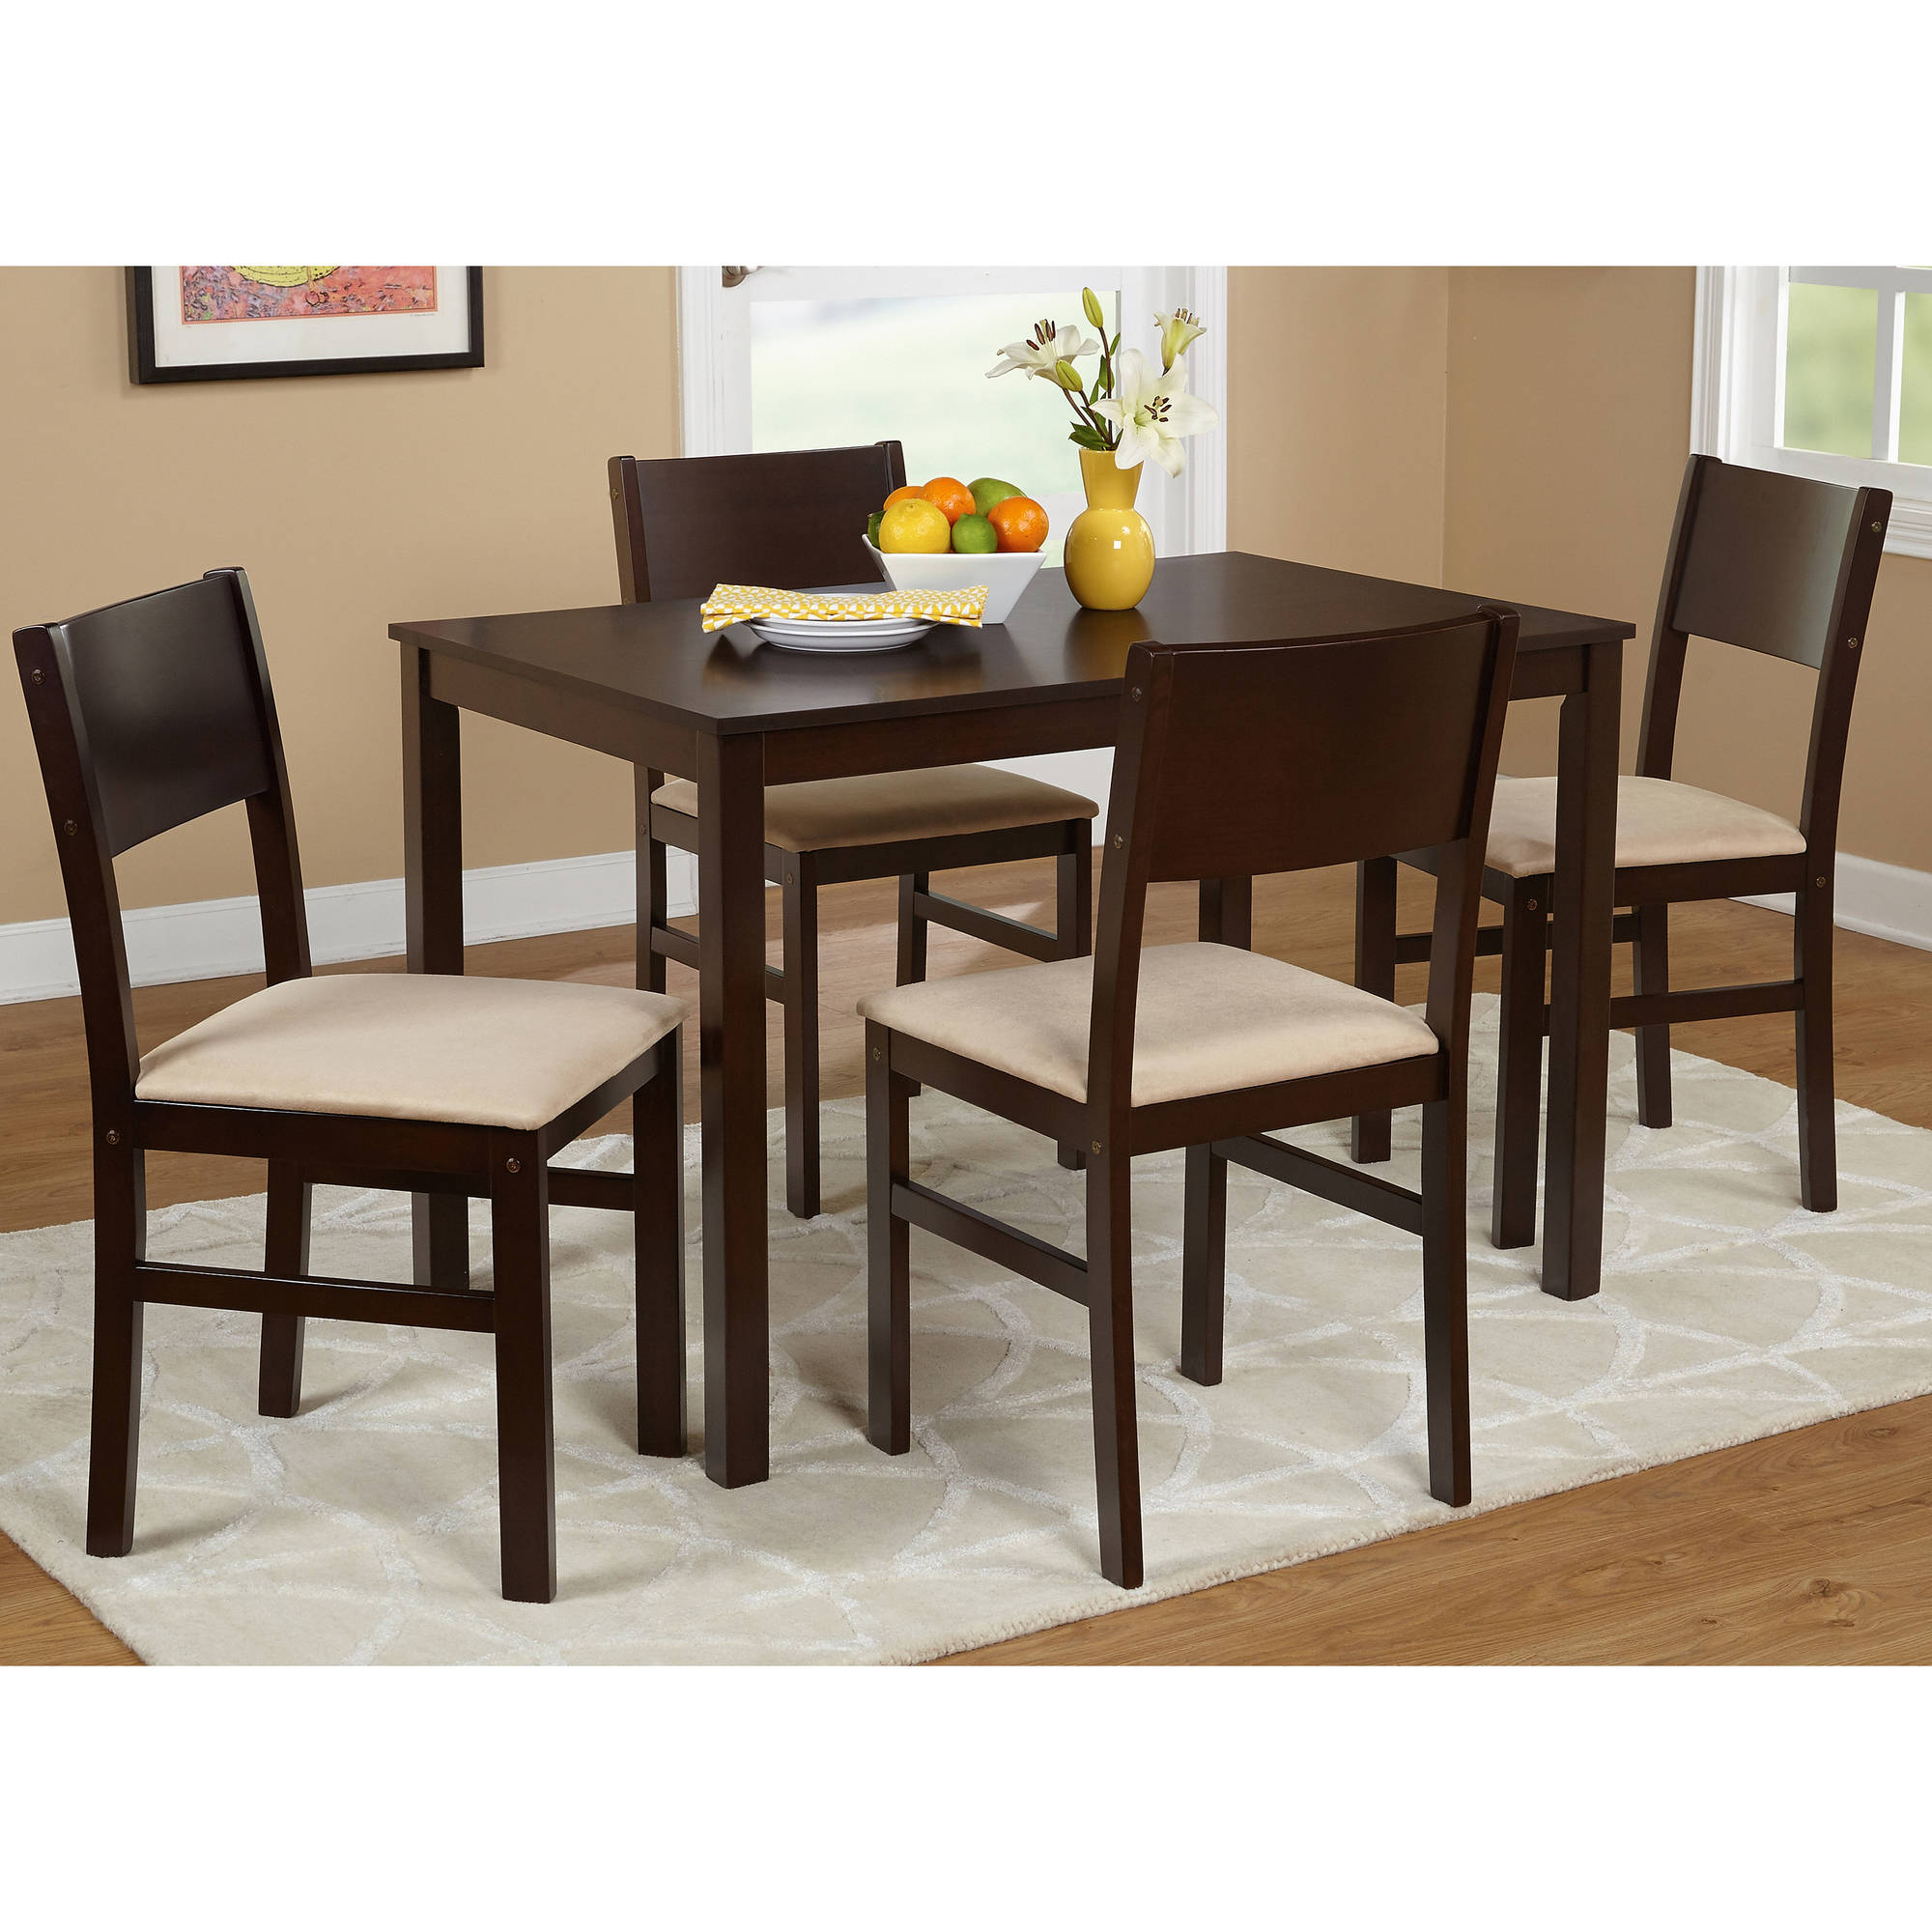 Lucca 5 Piece Dining Set, Multiple Colors